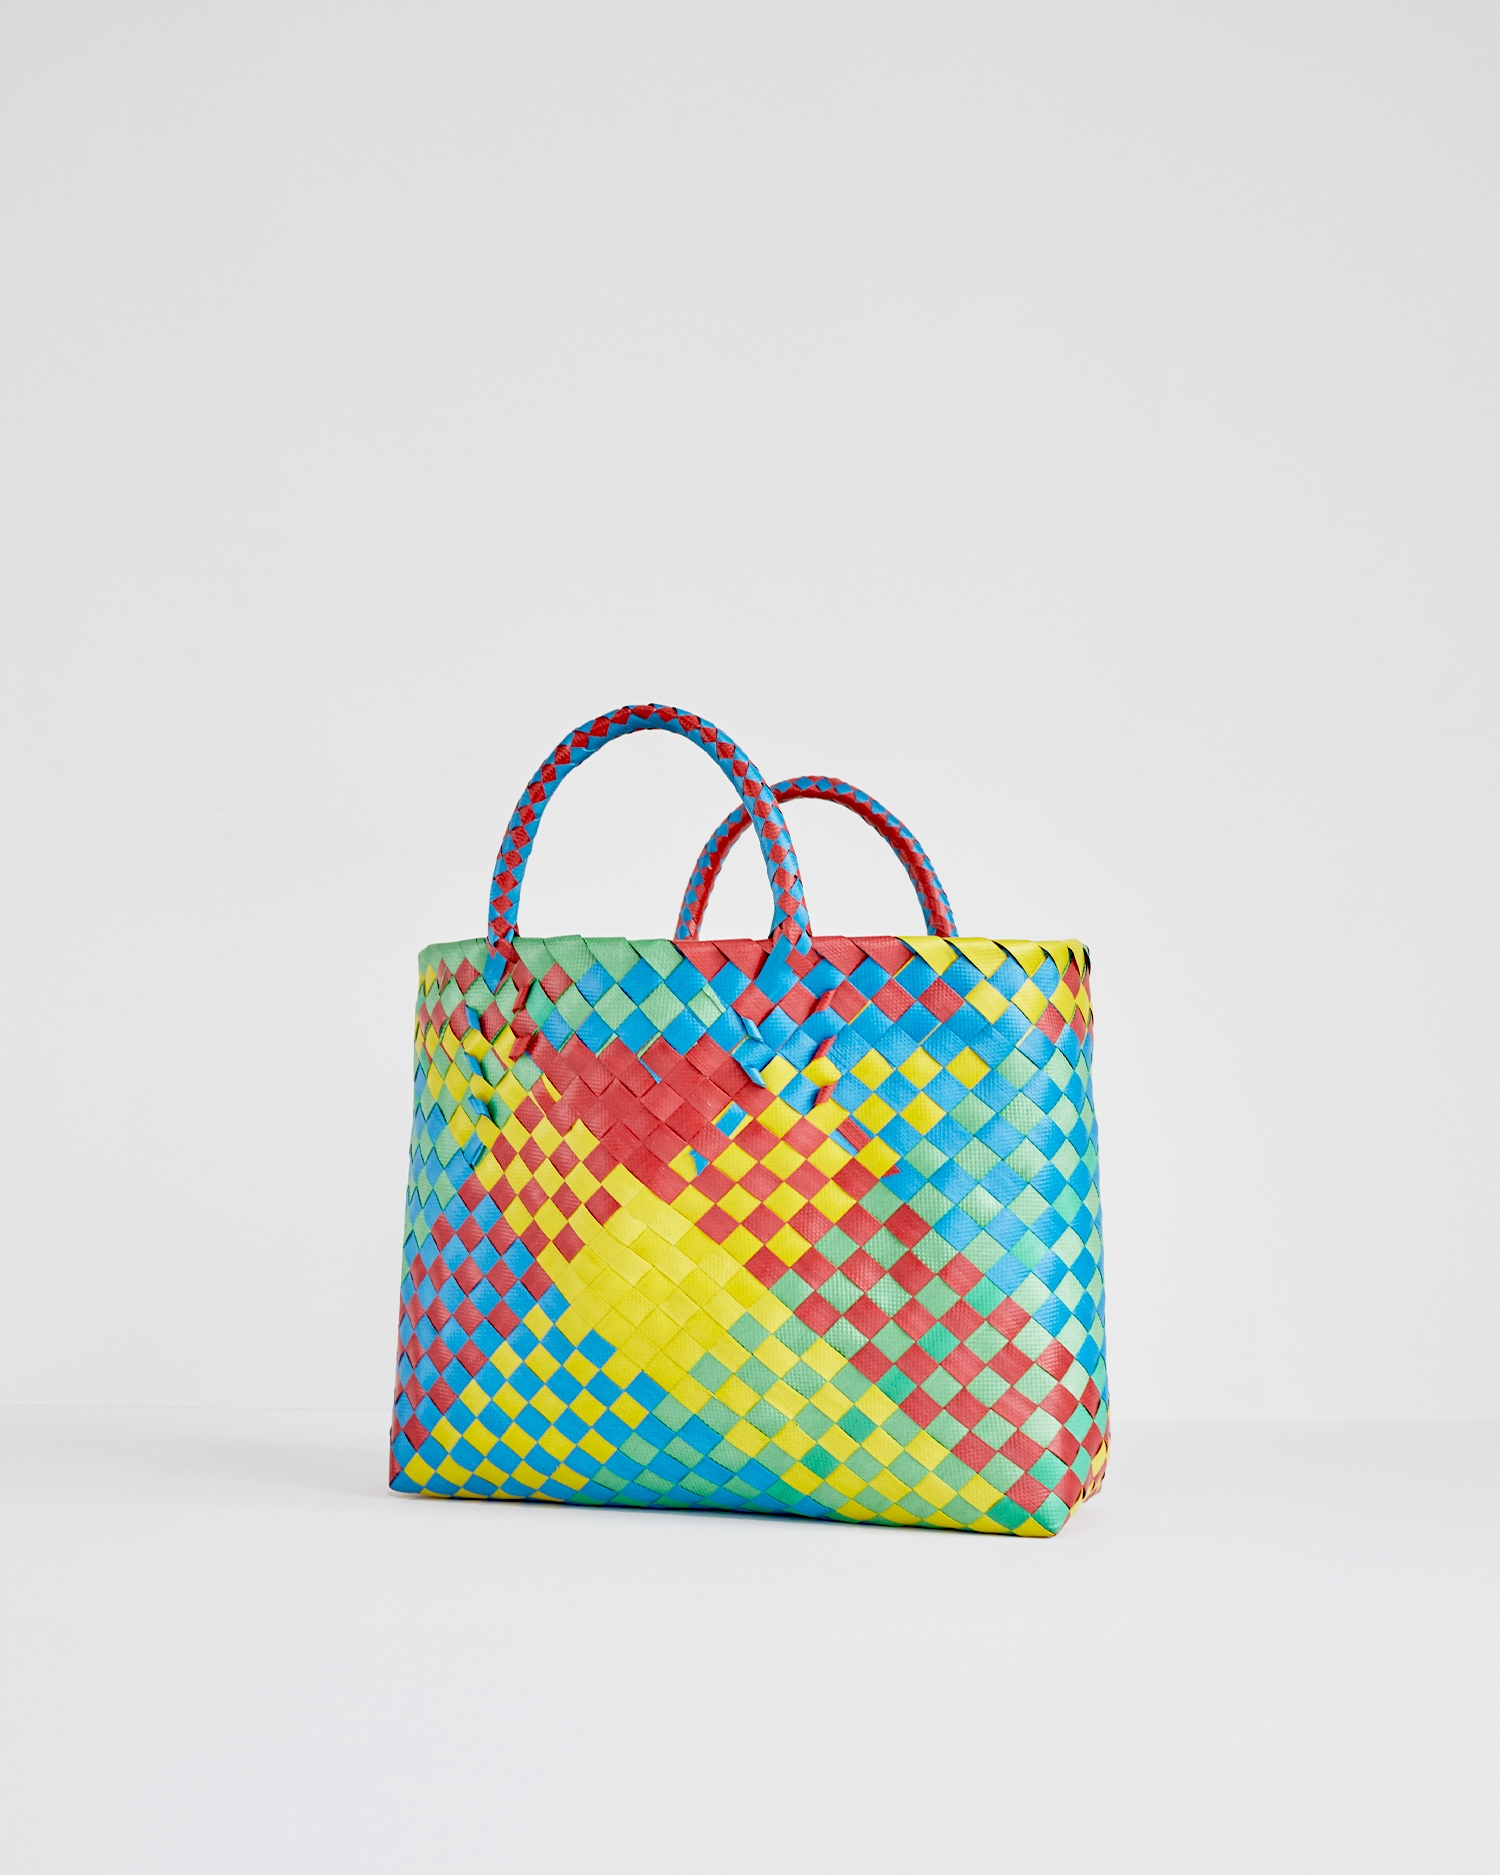 One DNA Everyday Bag in Basketweave